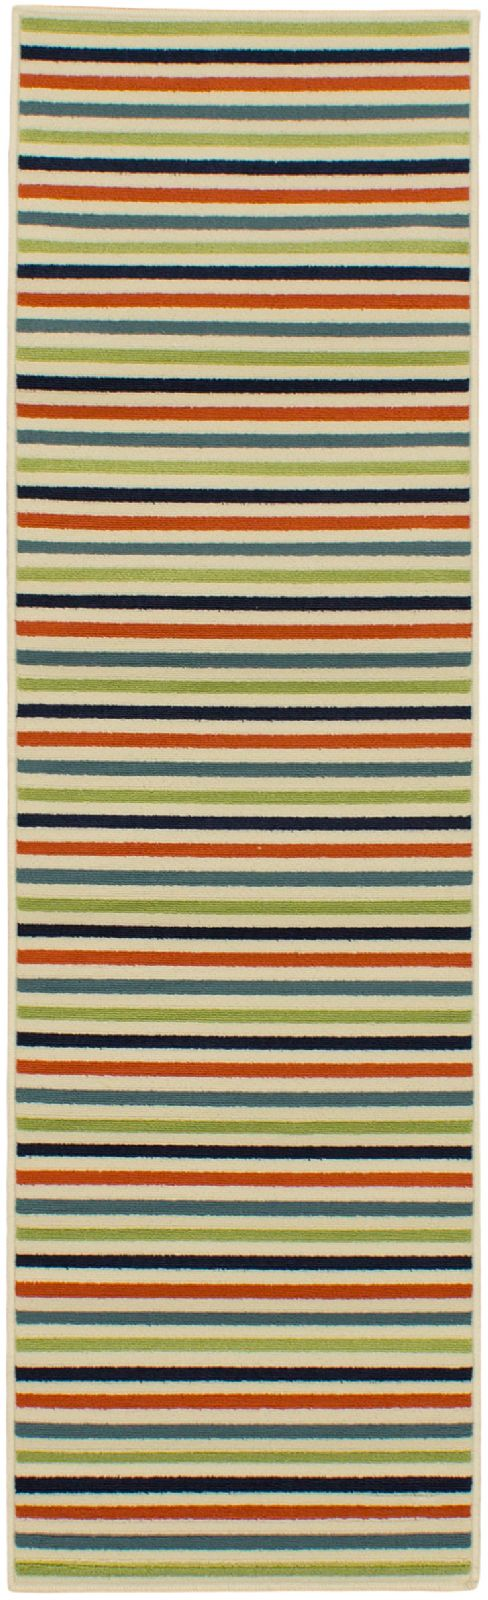 ecarpet gallery newport indoor/outdoor area rug collection